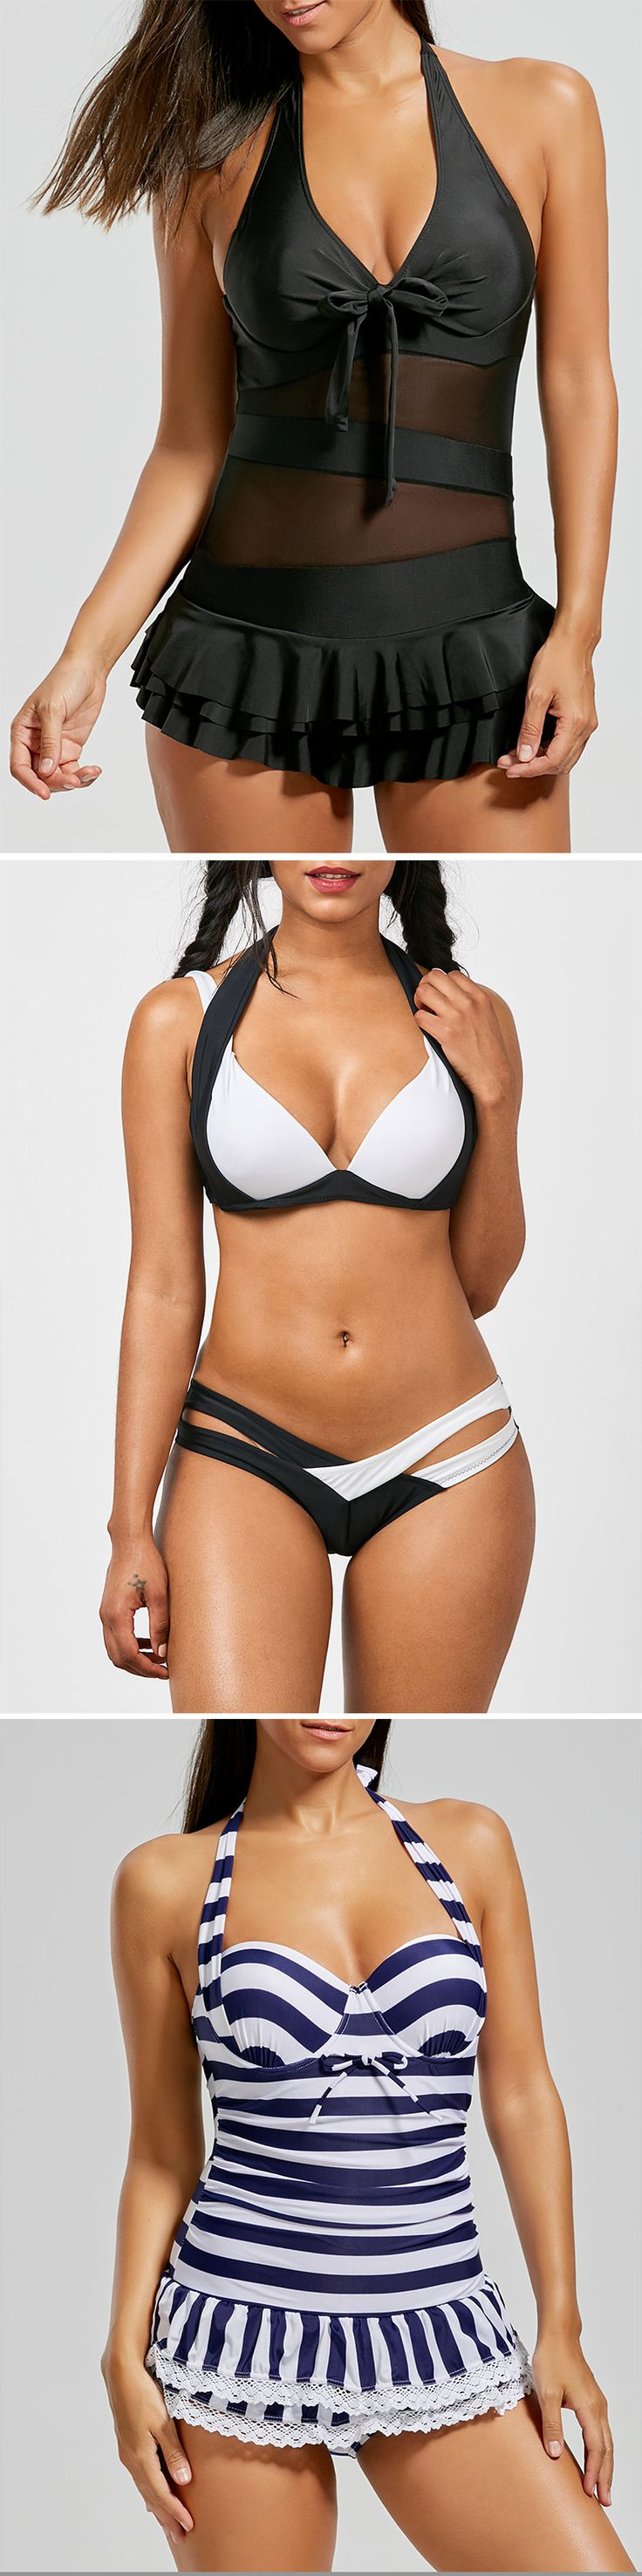 Best-Selling Swimwear Starting at $1.99 | Sammydress.com | #swimwear #bikini #tankini